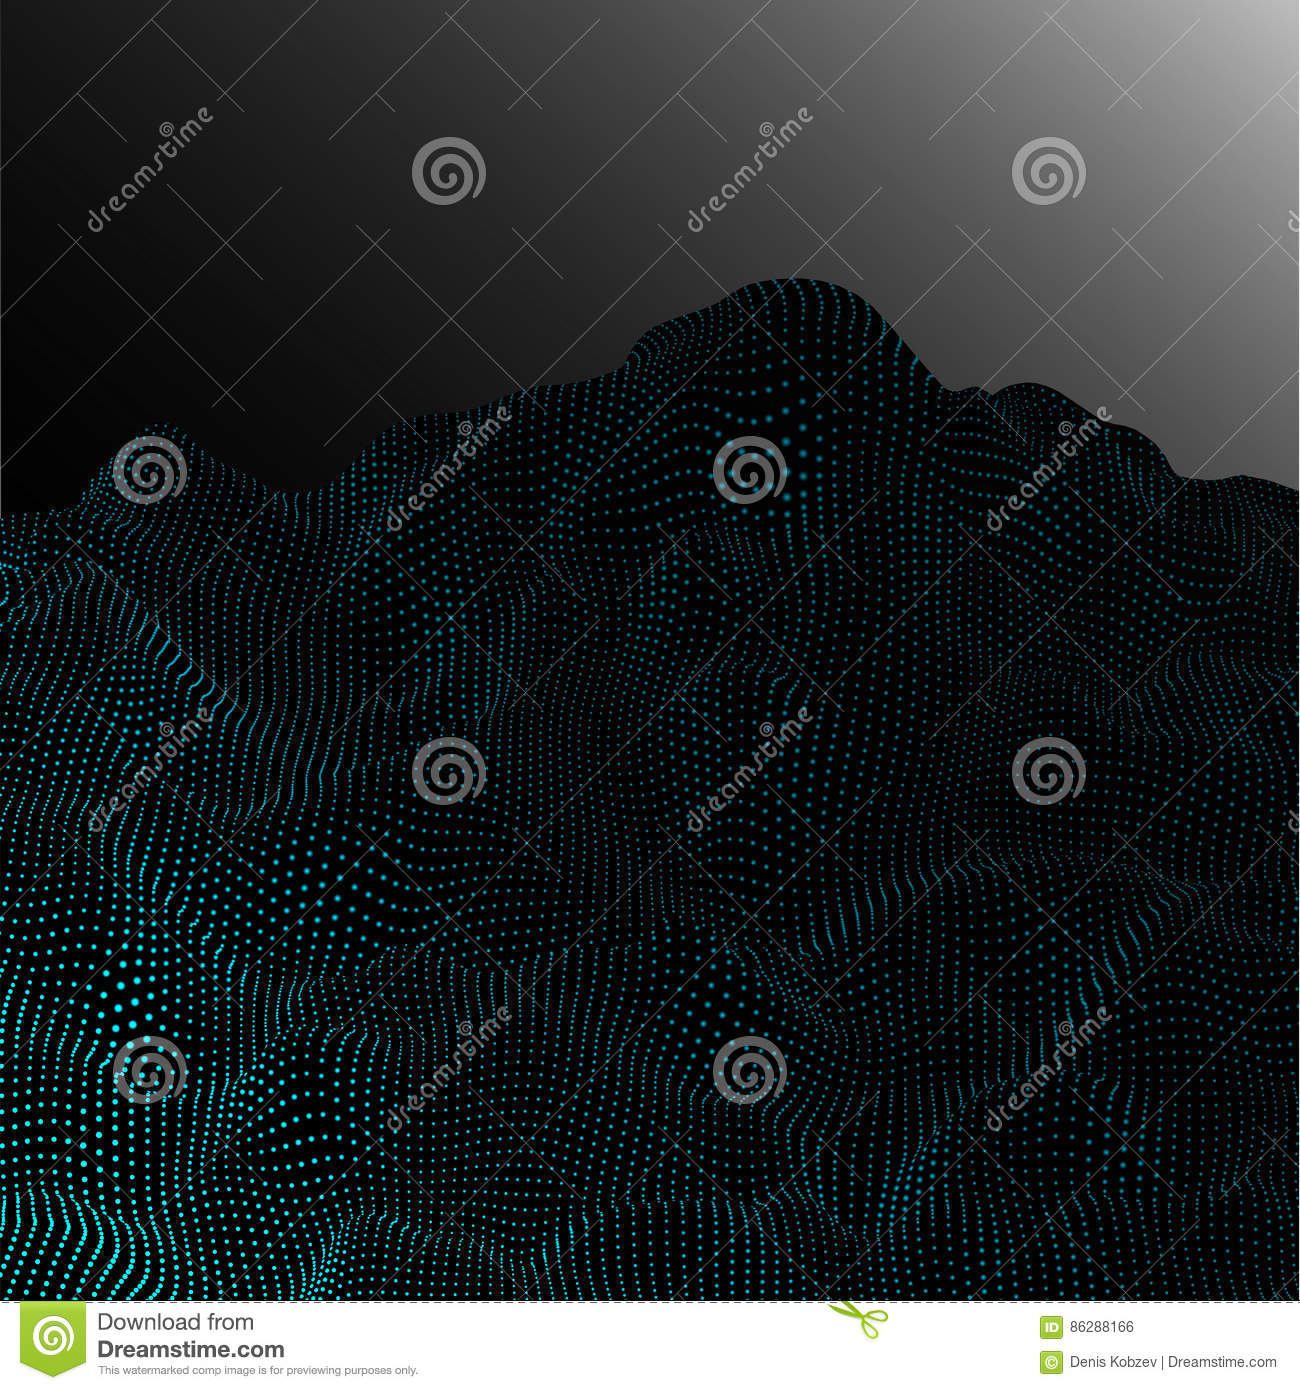 Abstract vector landscape background. 3d technology vector illustration.EPS10